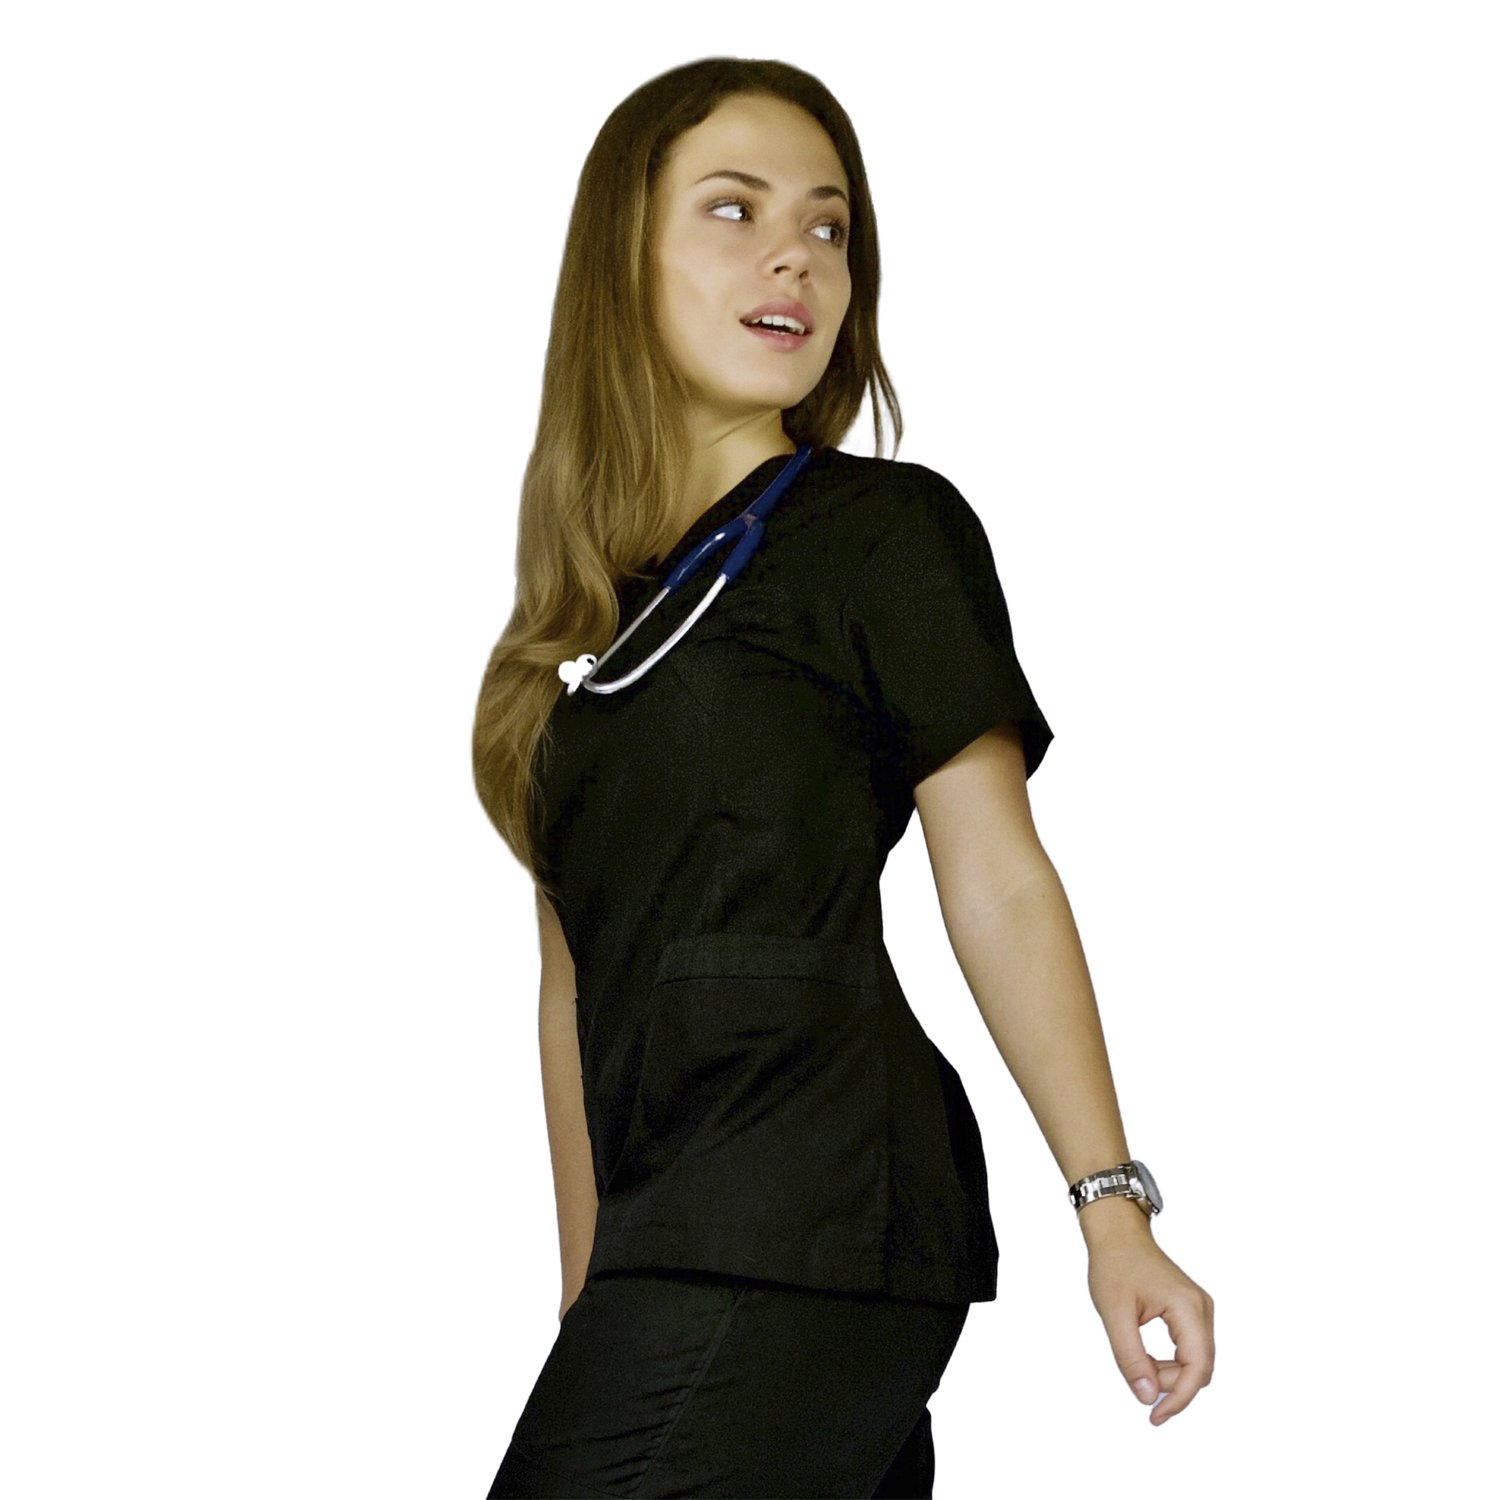 AMAZMEE Medical Scrubs Uniform Set for Women V-Neck Wrap Top with Red Neckline and Drawstring Straight Pant 7 Pockets Premium Breathable Material (Black, XS)